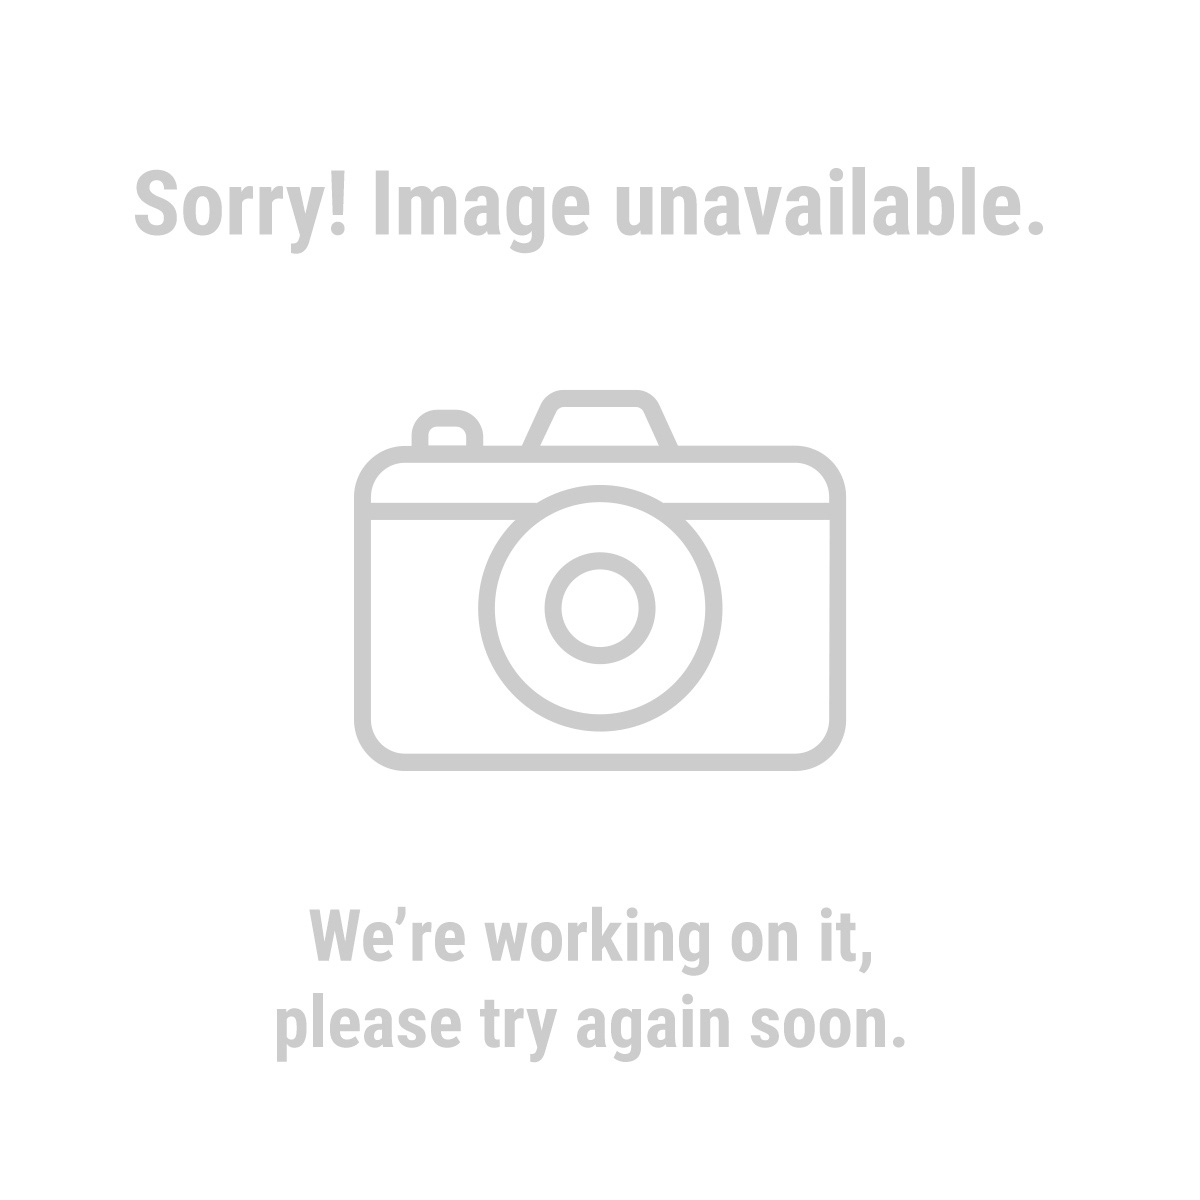 Western Safety 94234 Support Belt with Reflector - Medium